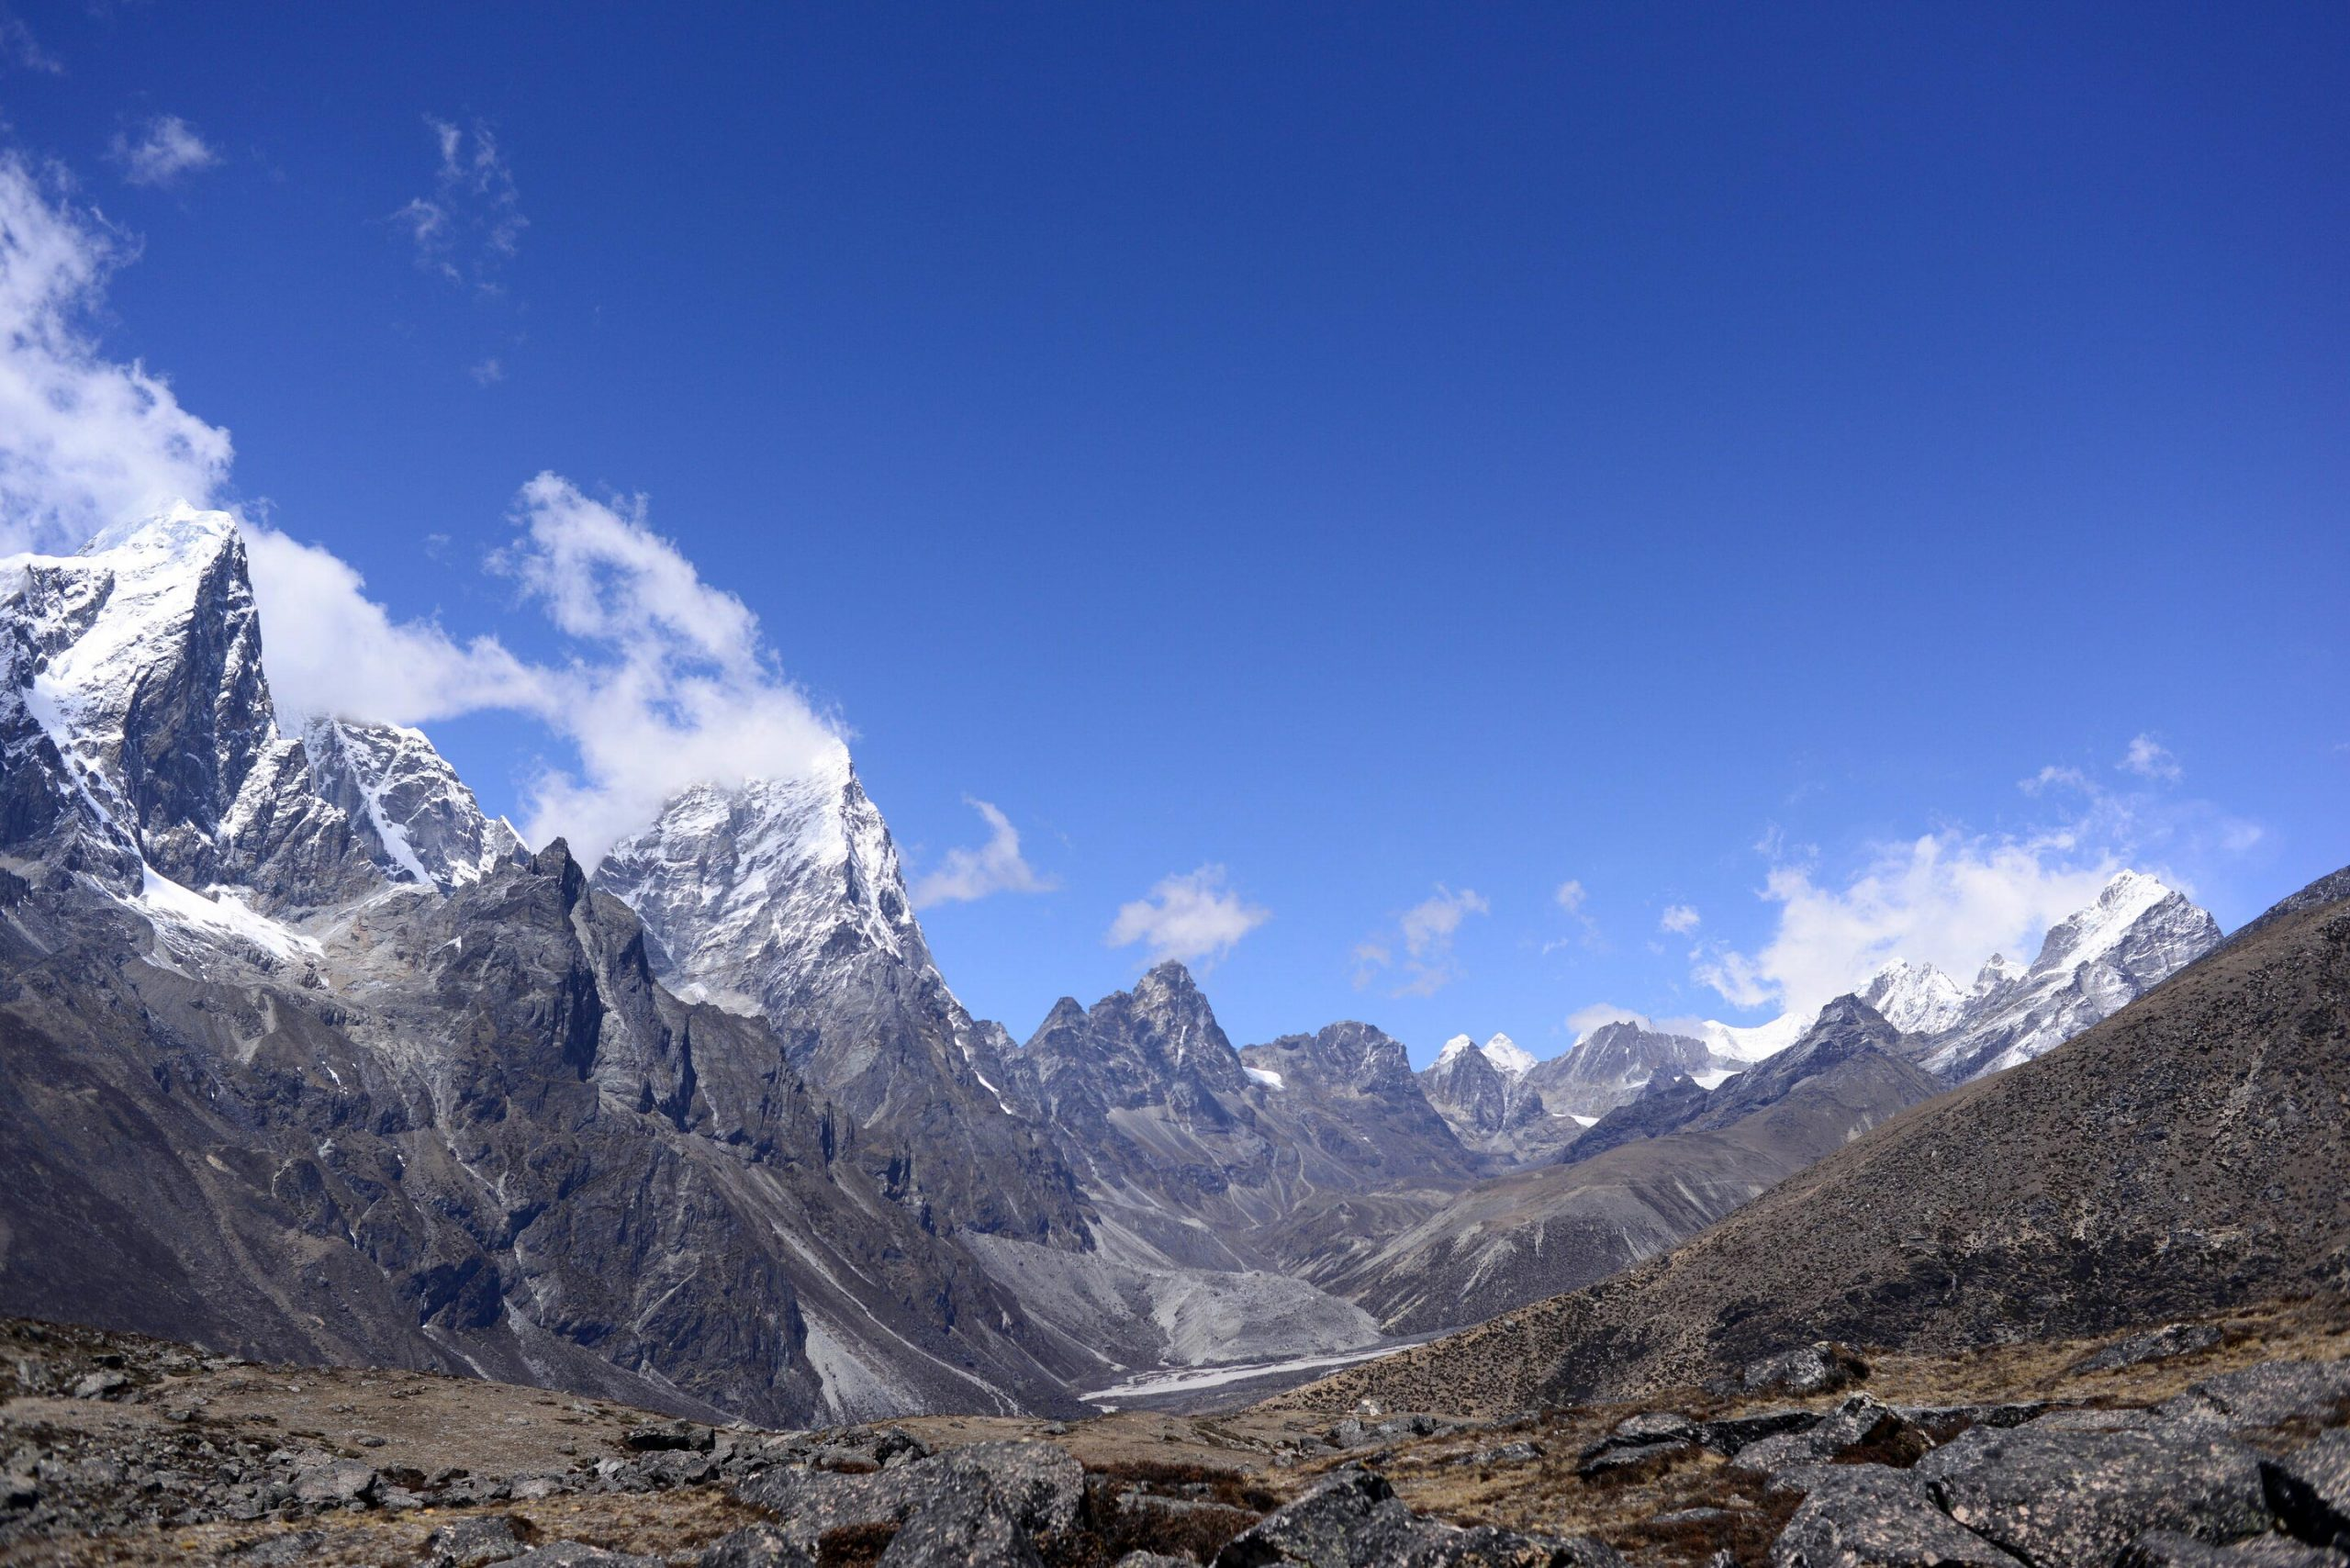 Plant Life Expanding Around Mount Everest And Across The